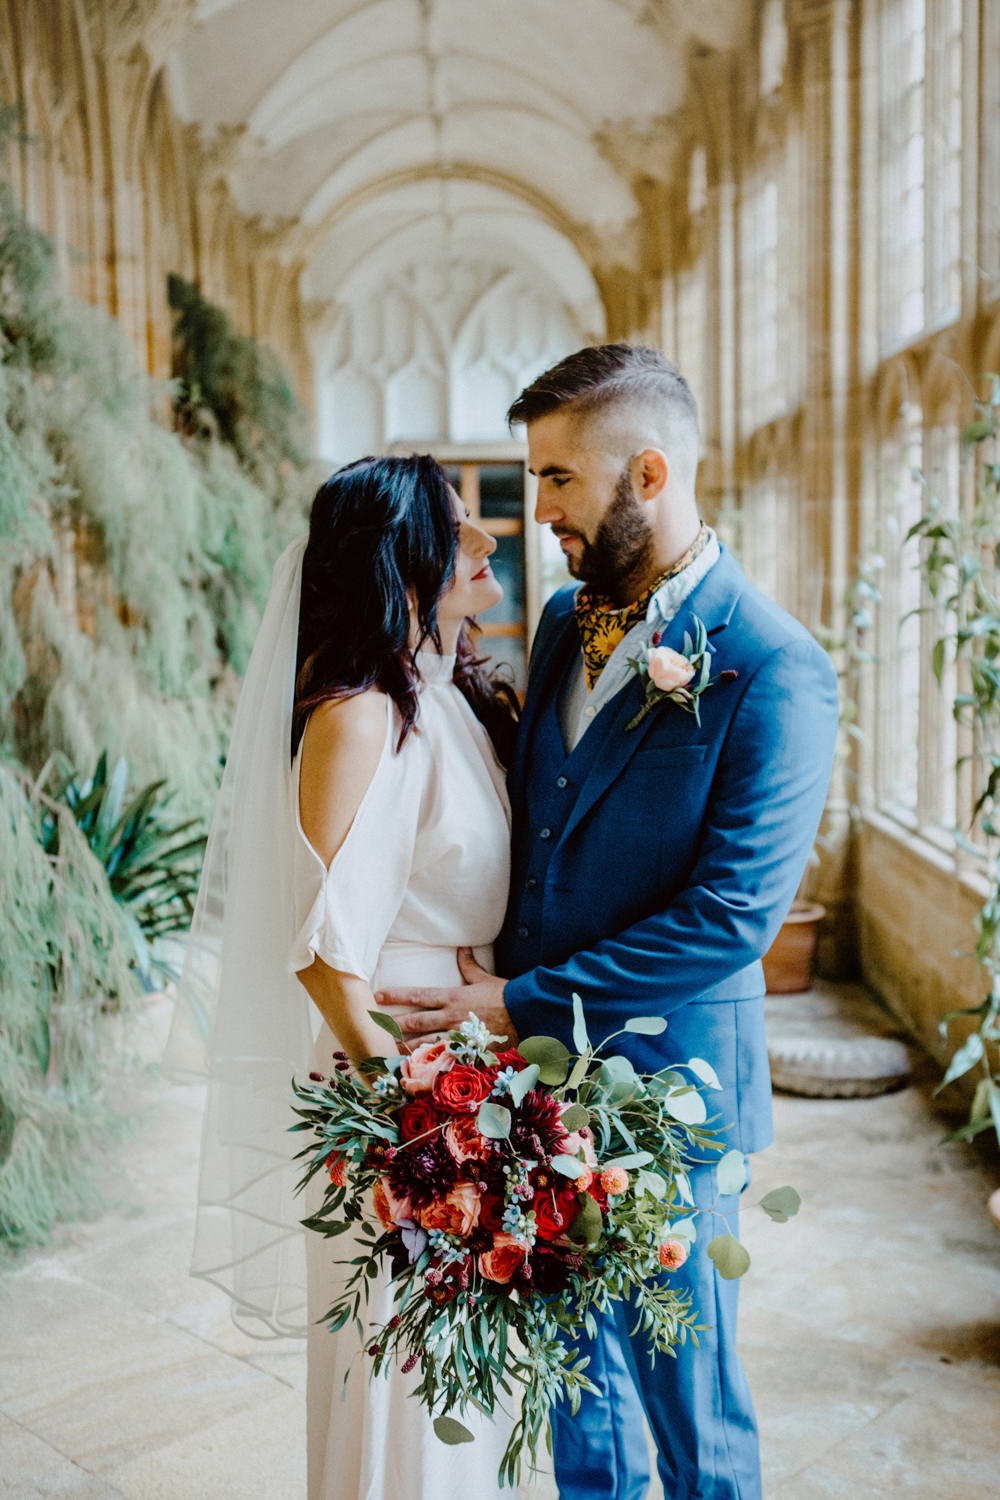 Groom Suit Blue Scarf Tie Cravat Ethereal Romantic Wedding Ideas Katherine Newman Photography